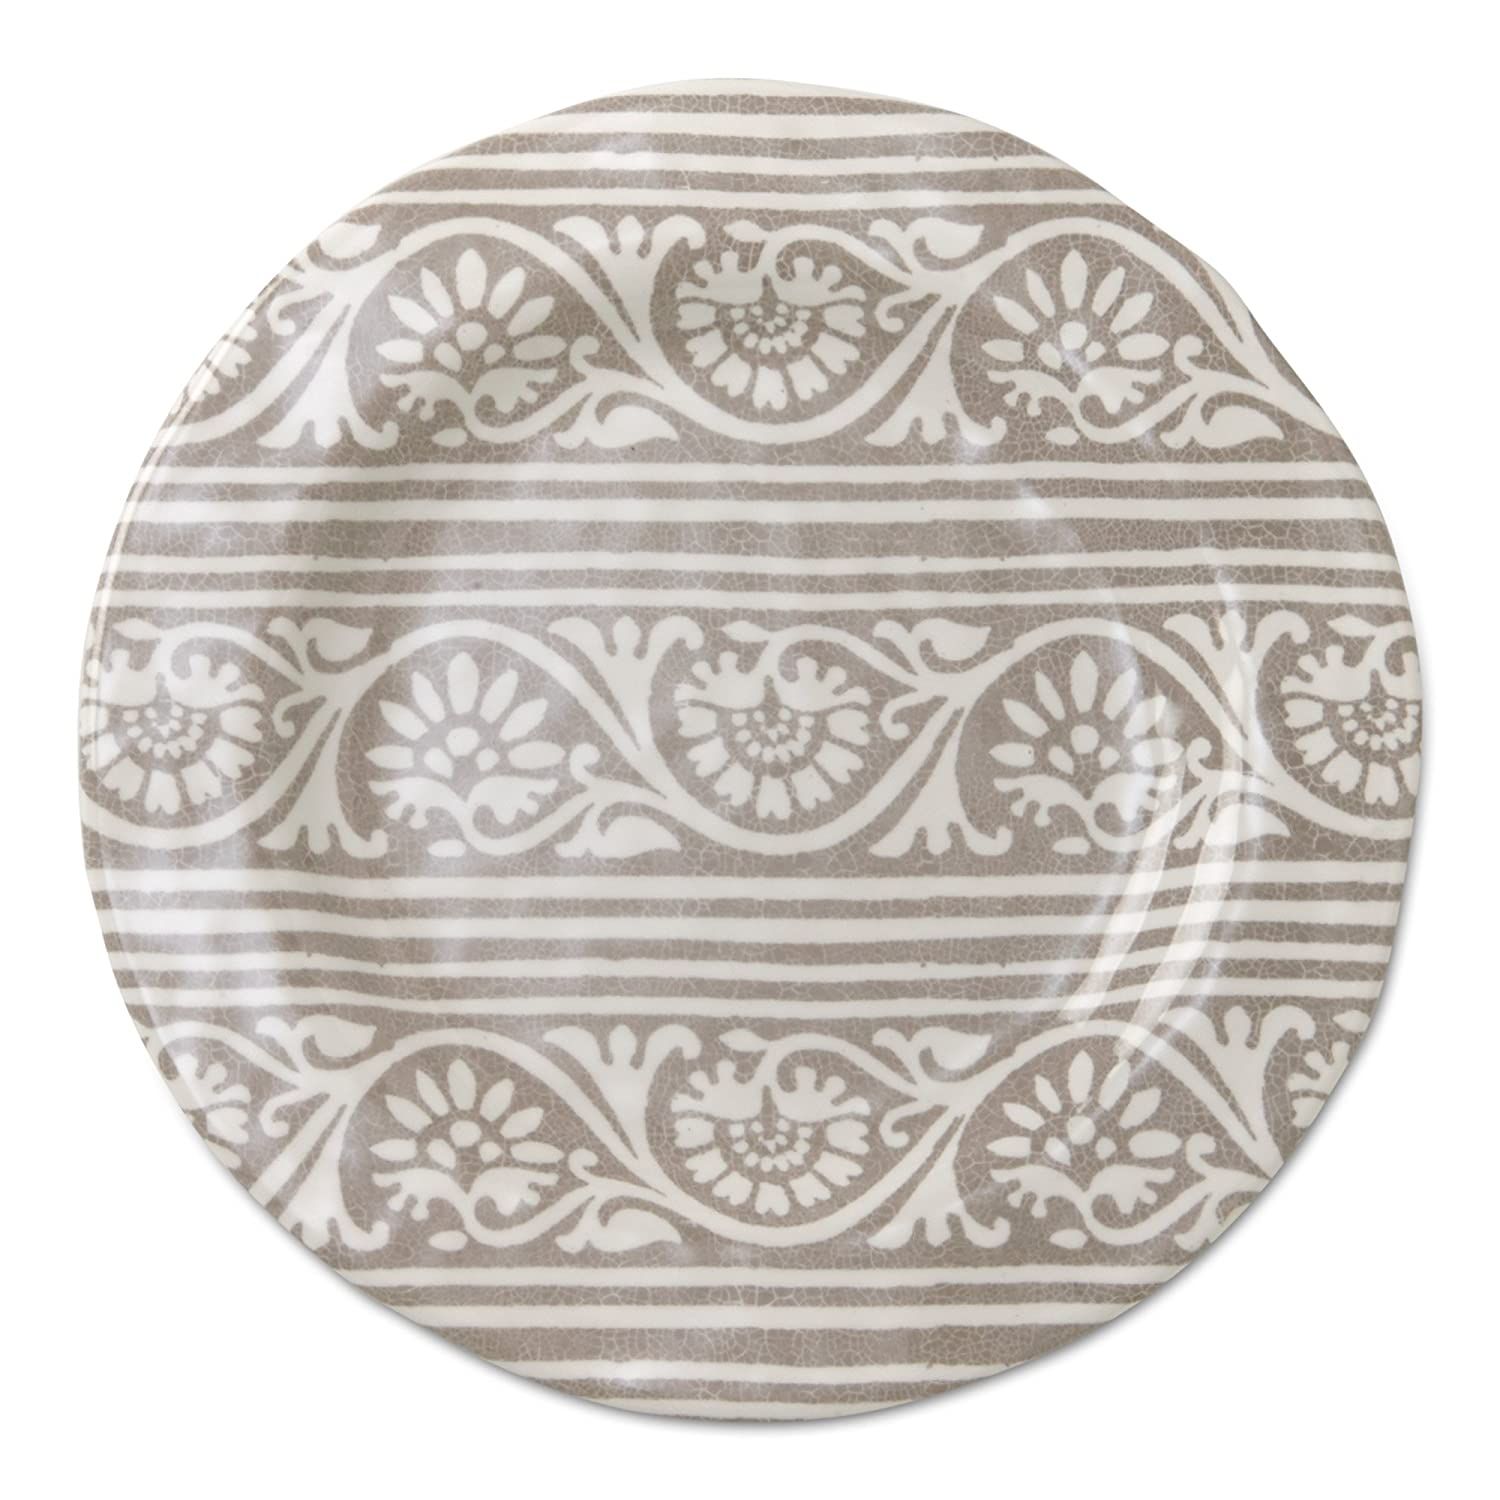 tag - Artisan Melamine Salad Plate, Durable, BPA-Free and Great for Outdoor or Casual Meals, Blue (Set of 4) 206035